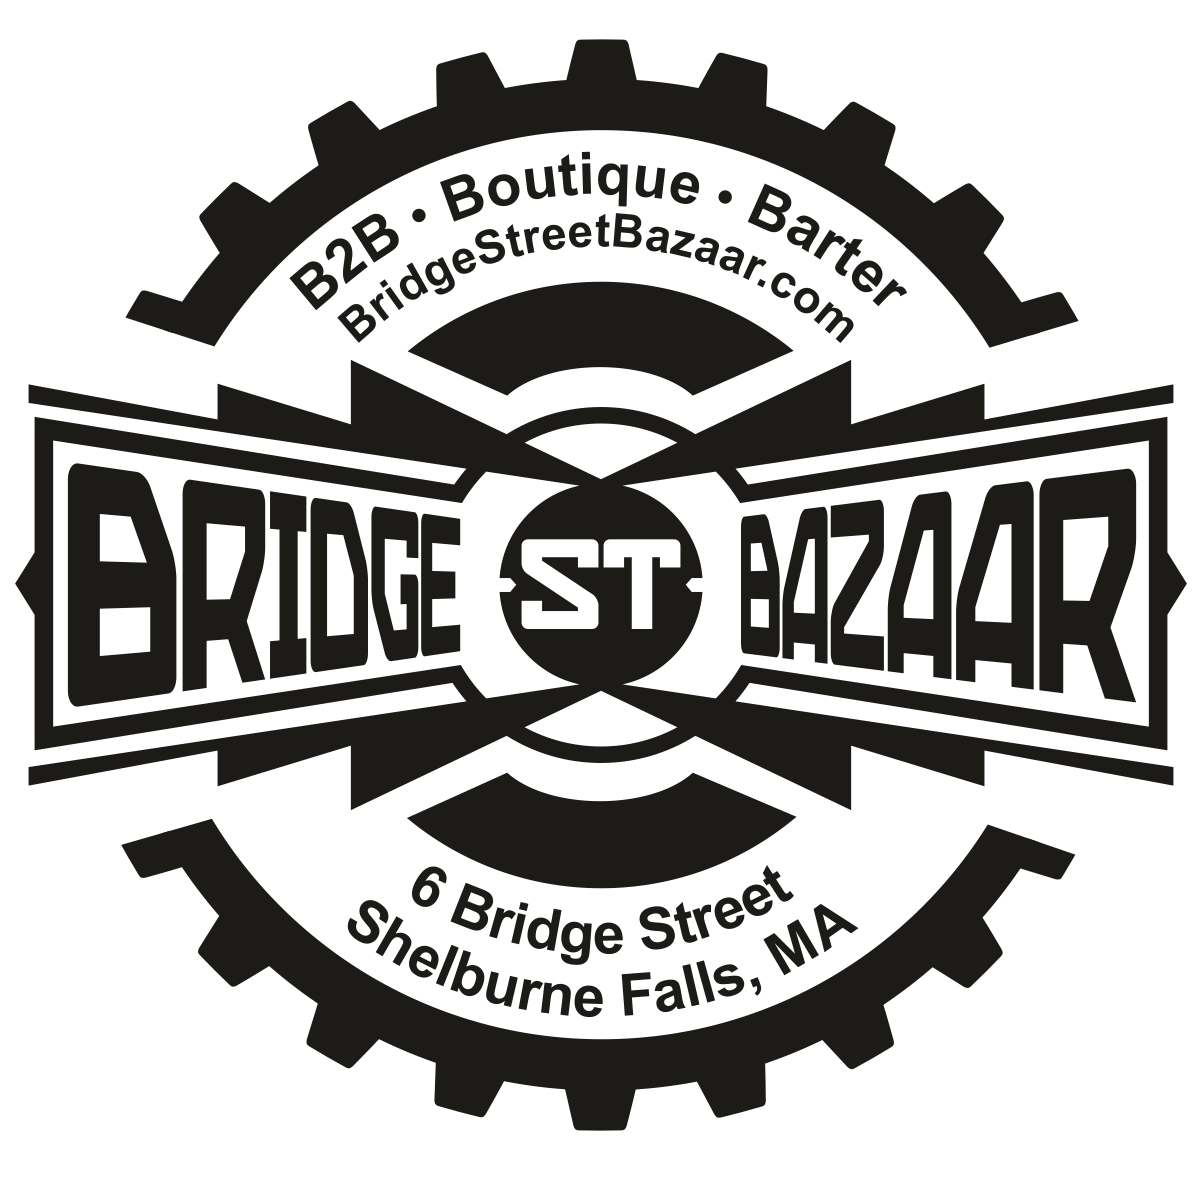 Bridge St Bazaar